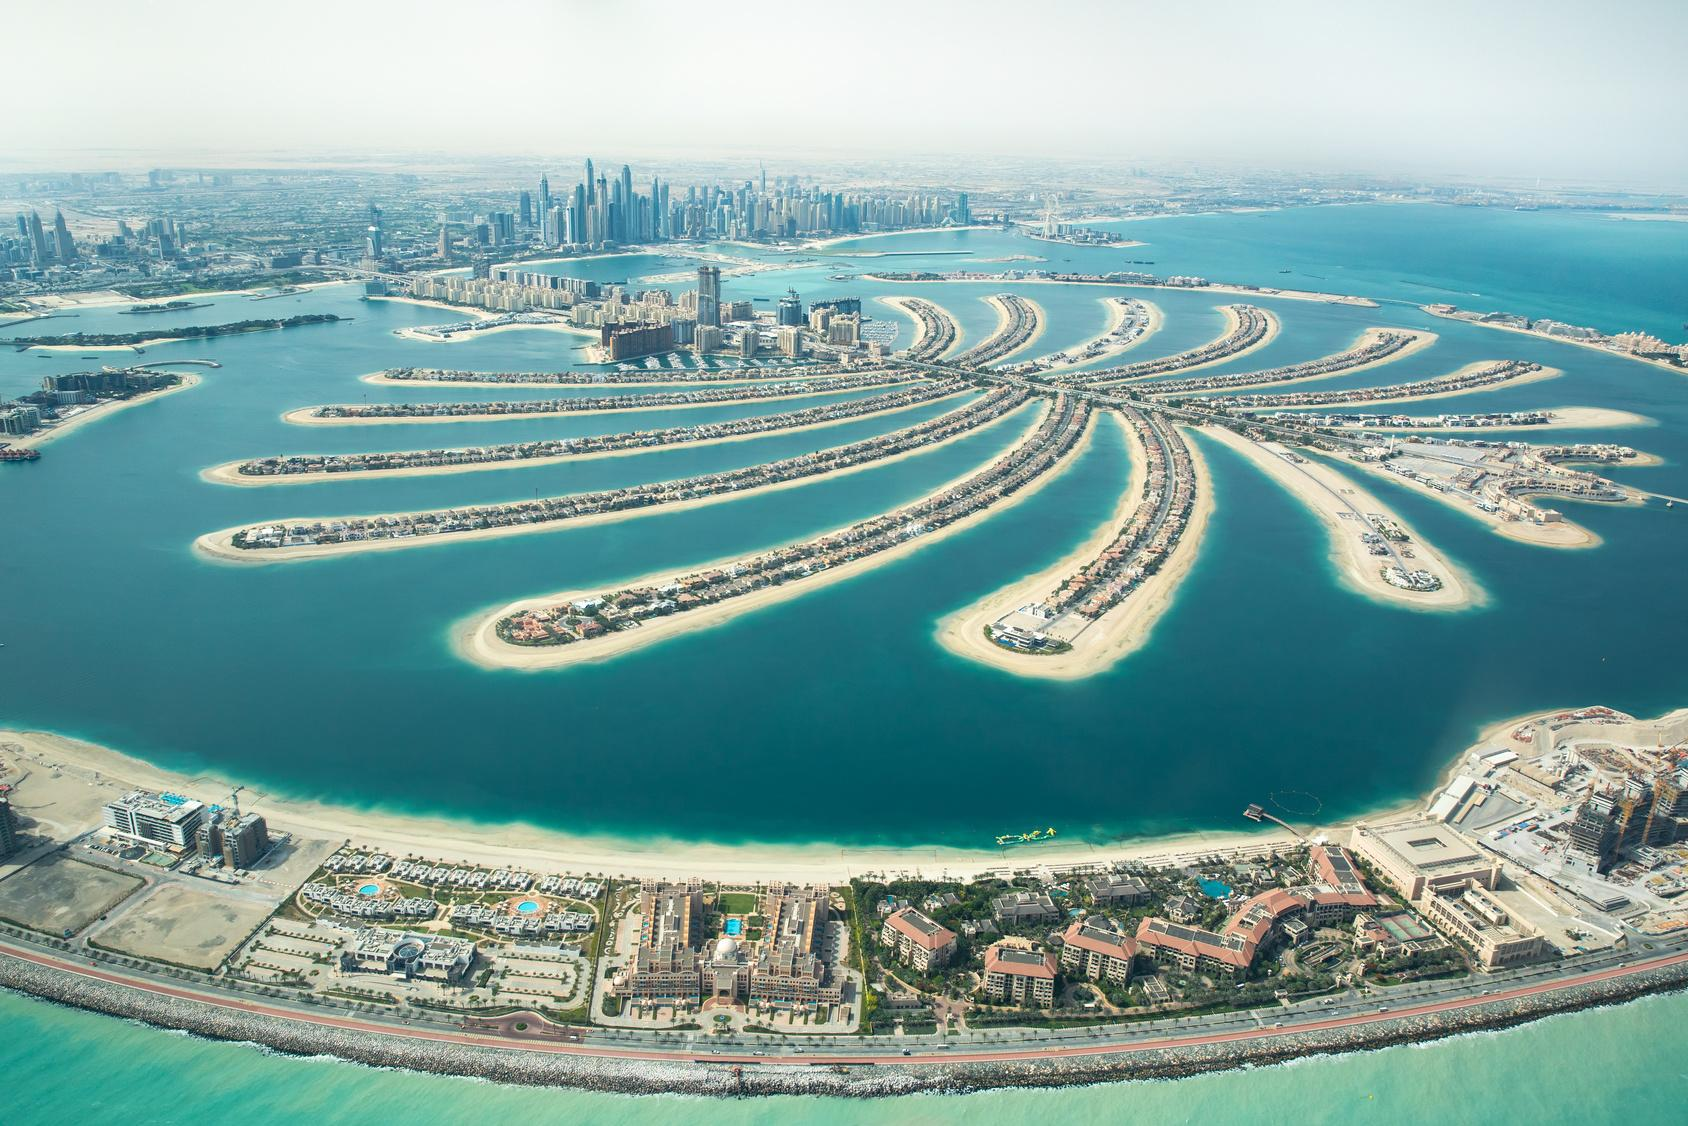 Palm Jumeirah – a wealthy place for the affluent